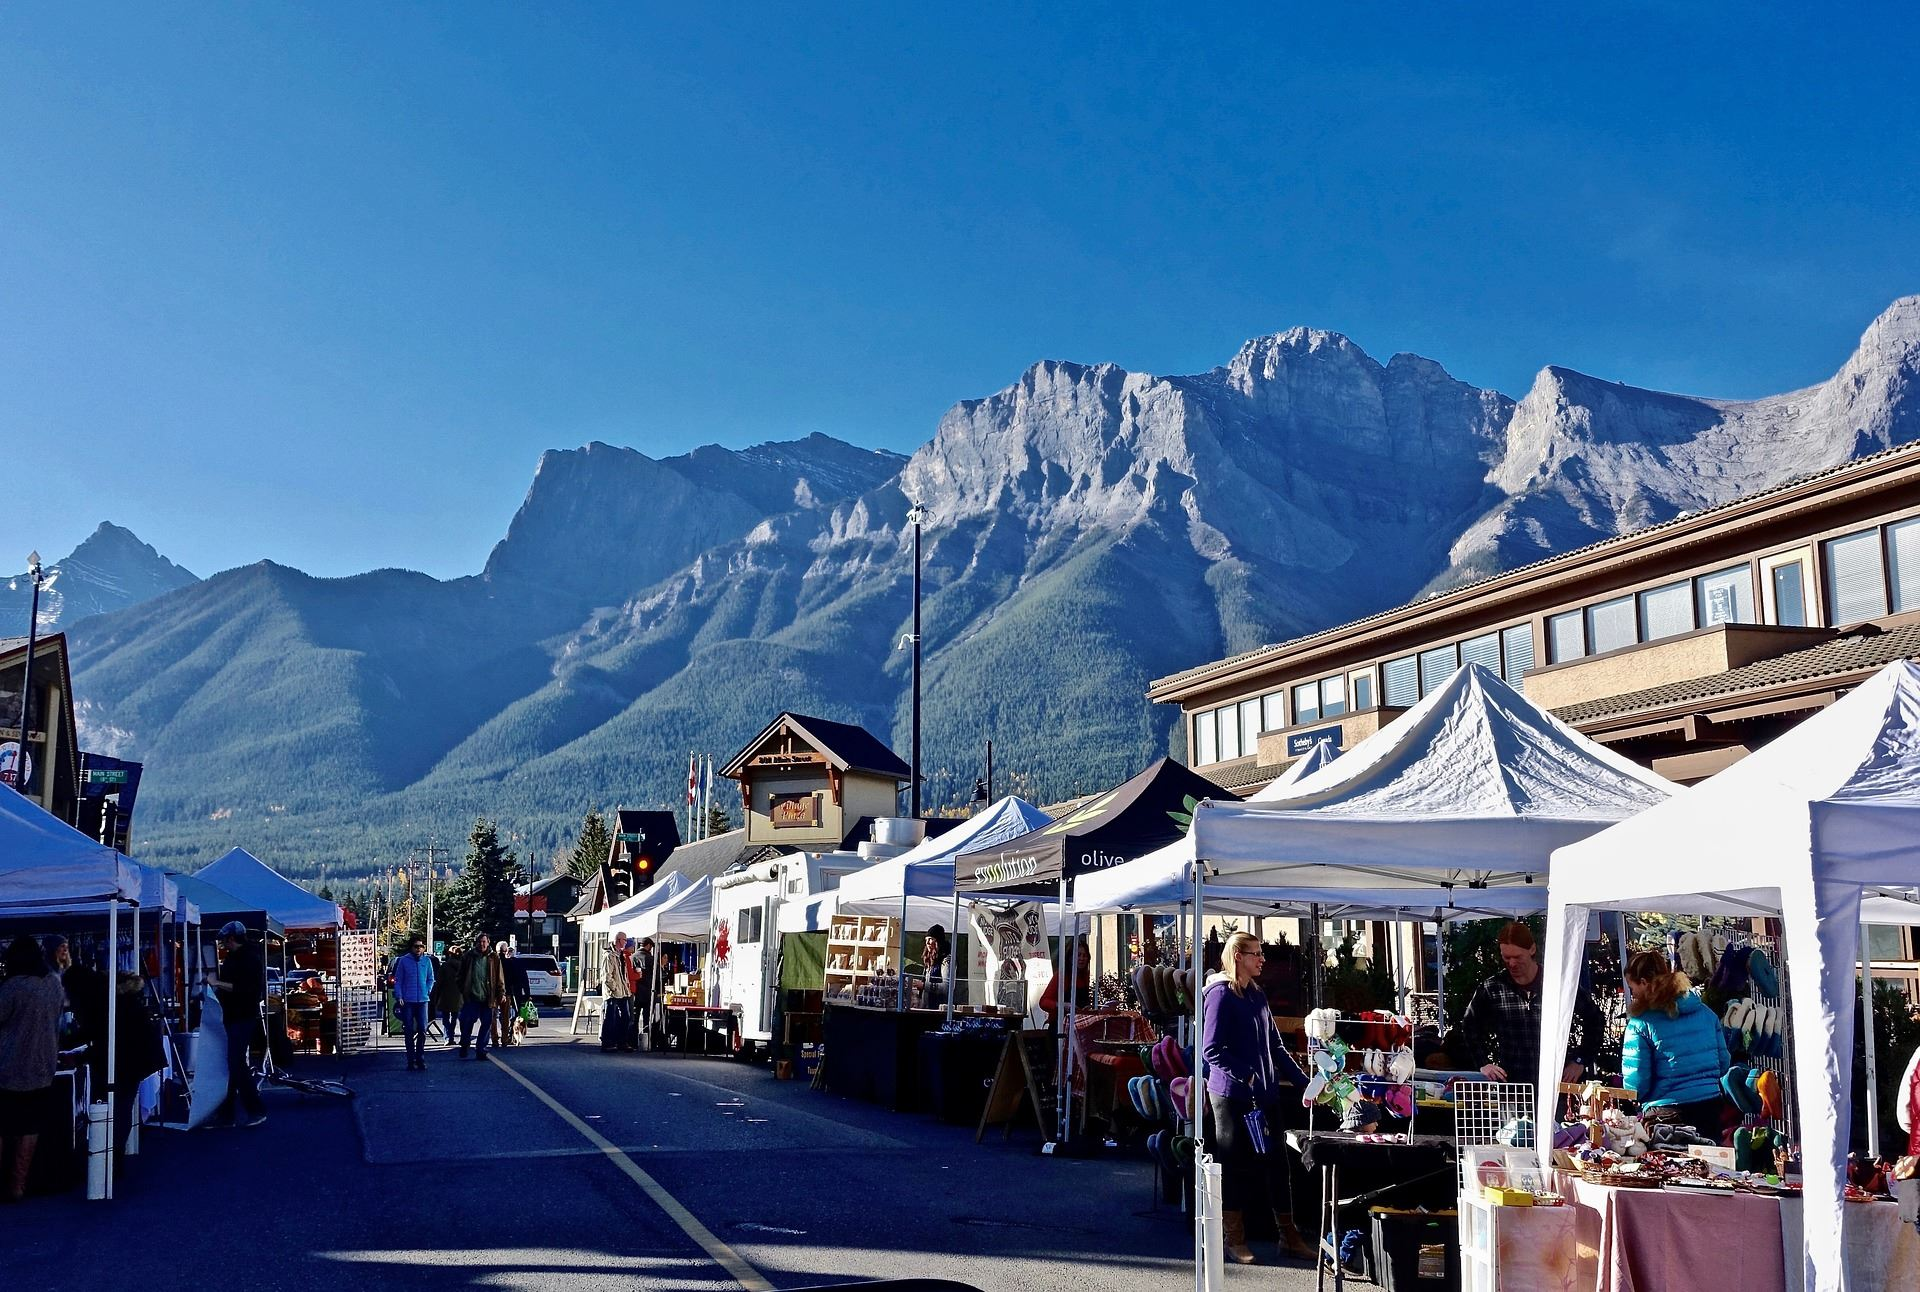 Farmers Market Booths with a Mountain Vista